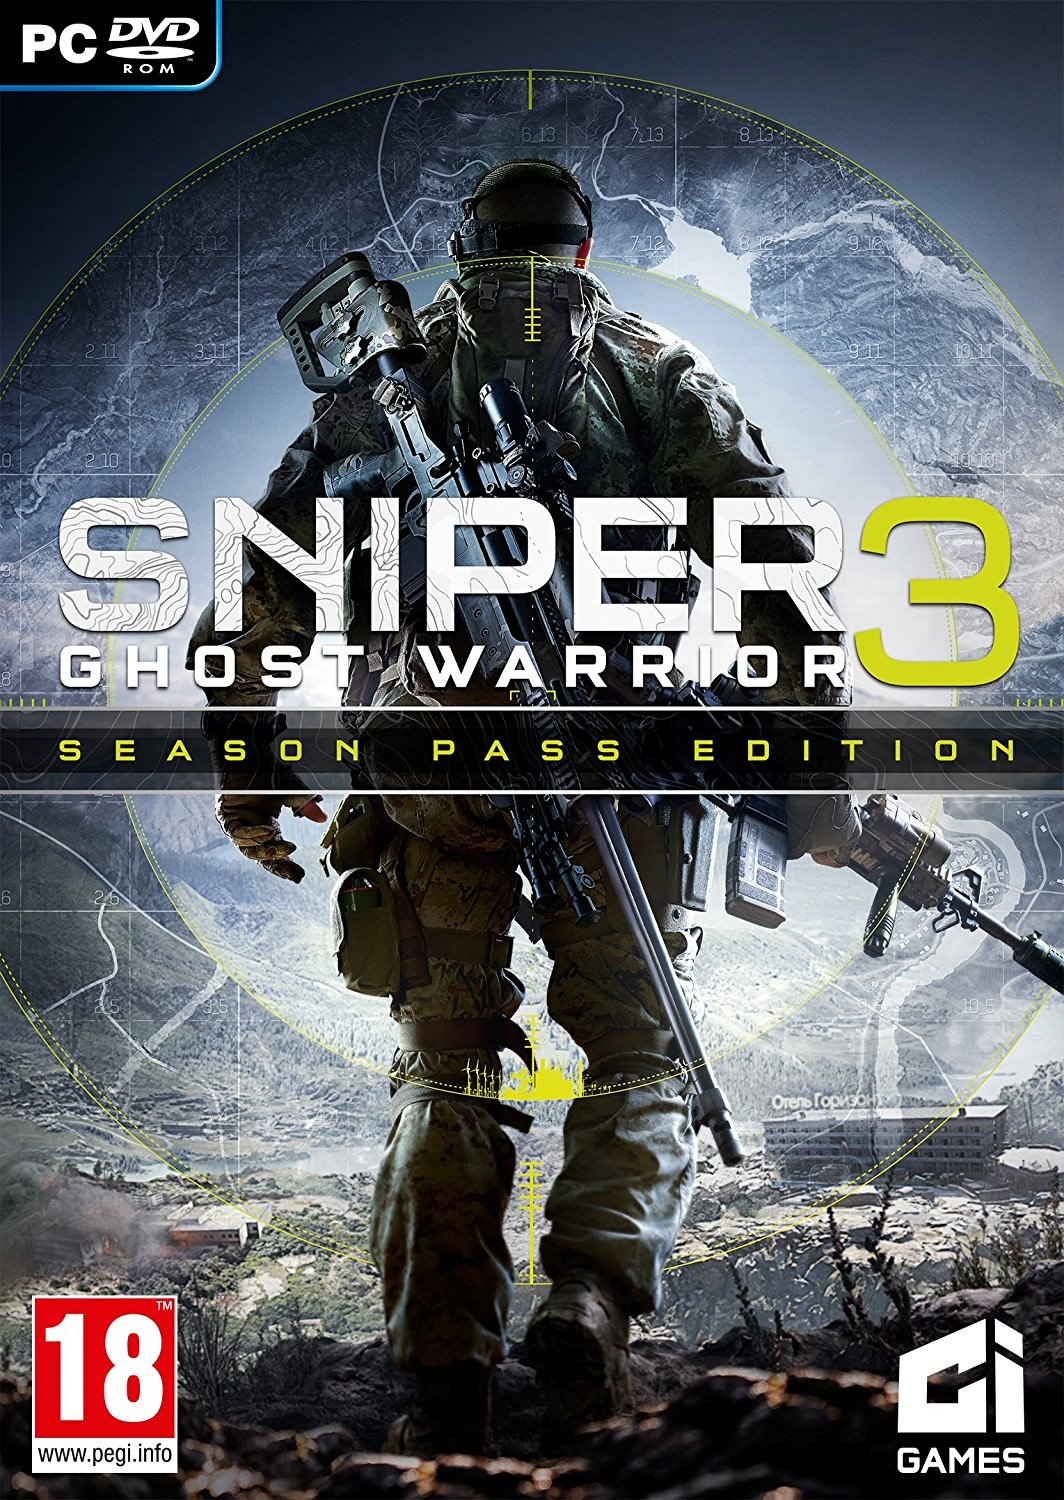 Sniper Ghost Warrior 3-CPY| Mega.co.nz - Mail.ru , Uptobox Full PC Oyun indir